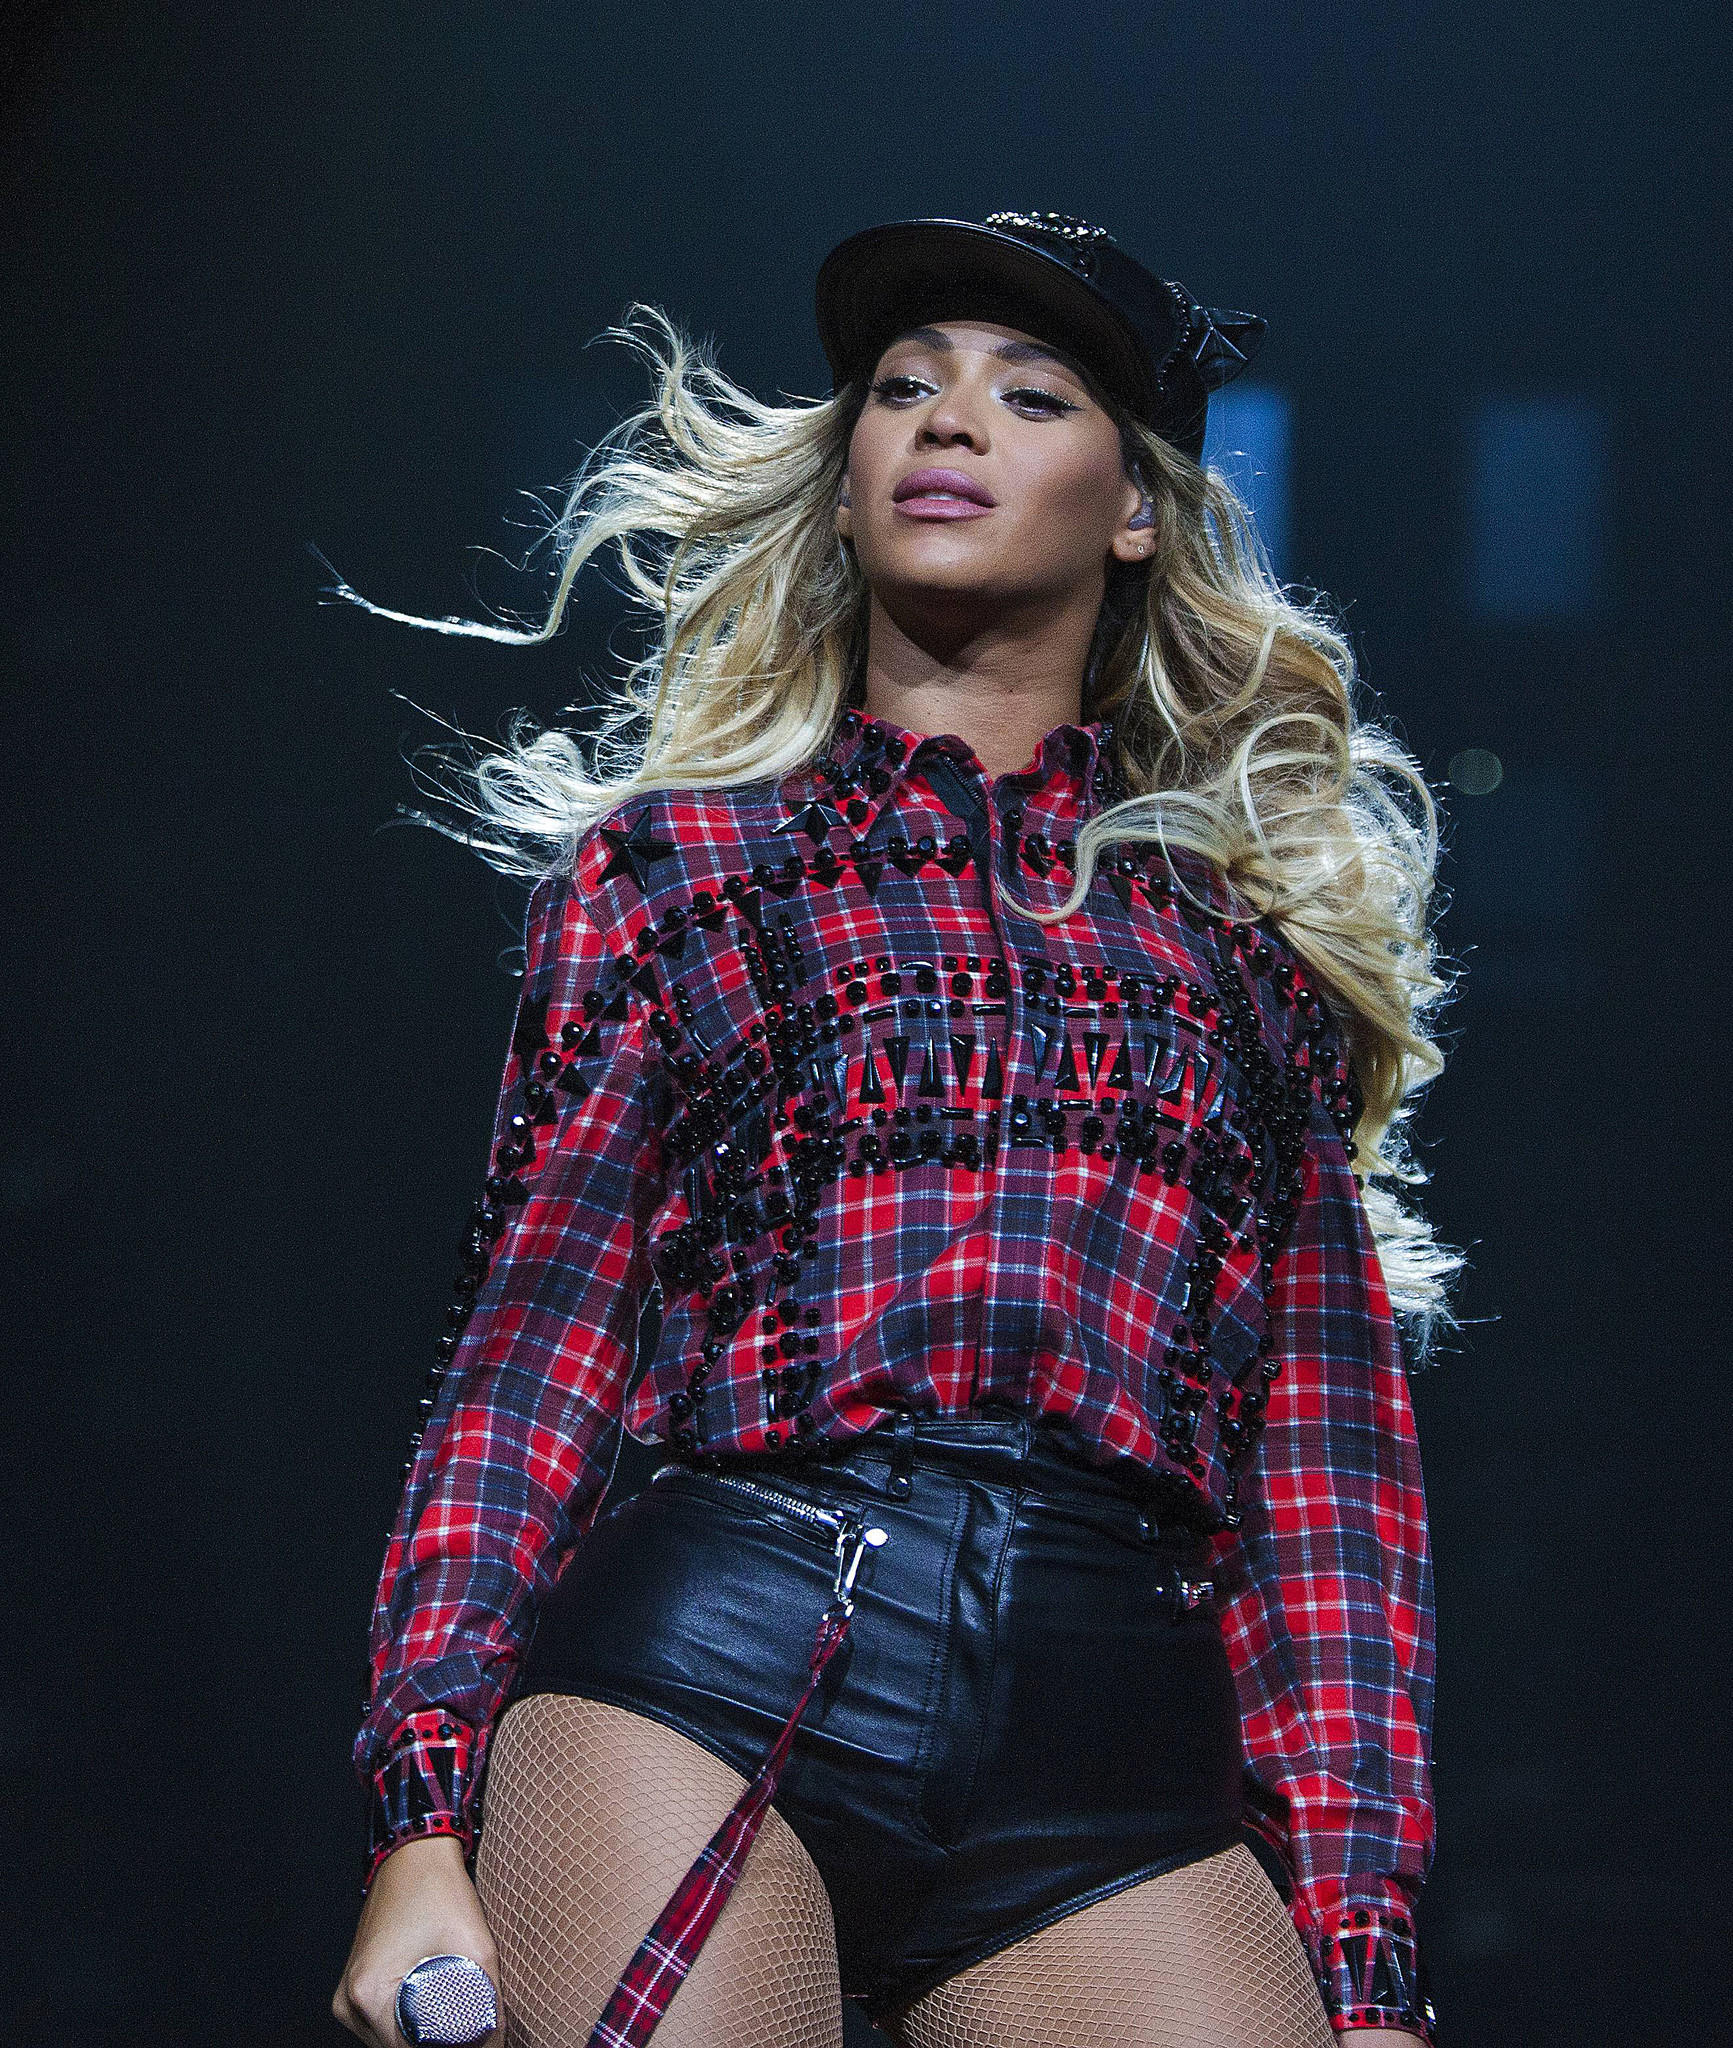 la-ar-beyonce-debuts-new-mrs-carter-tour-costu-001